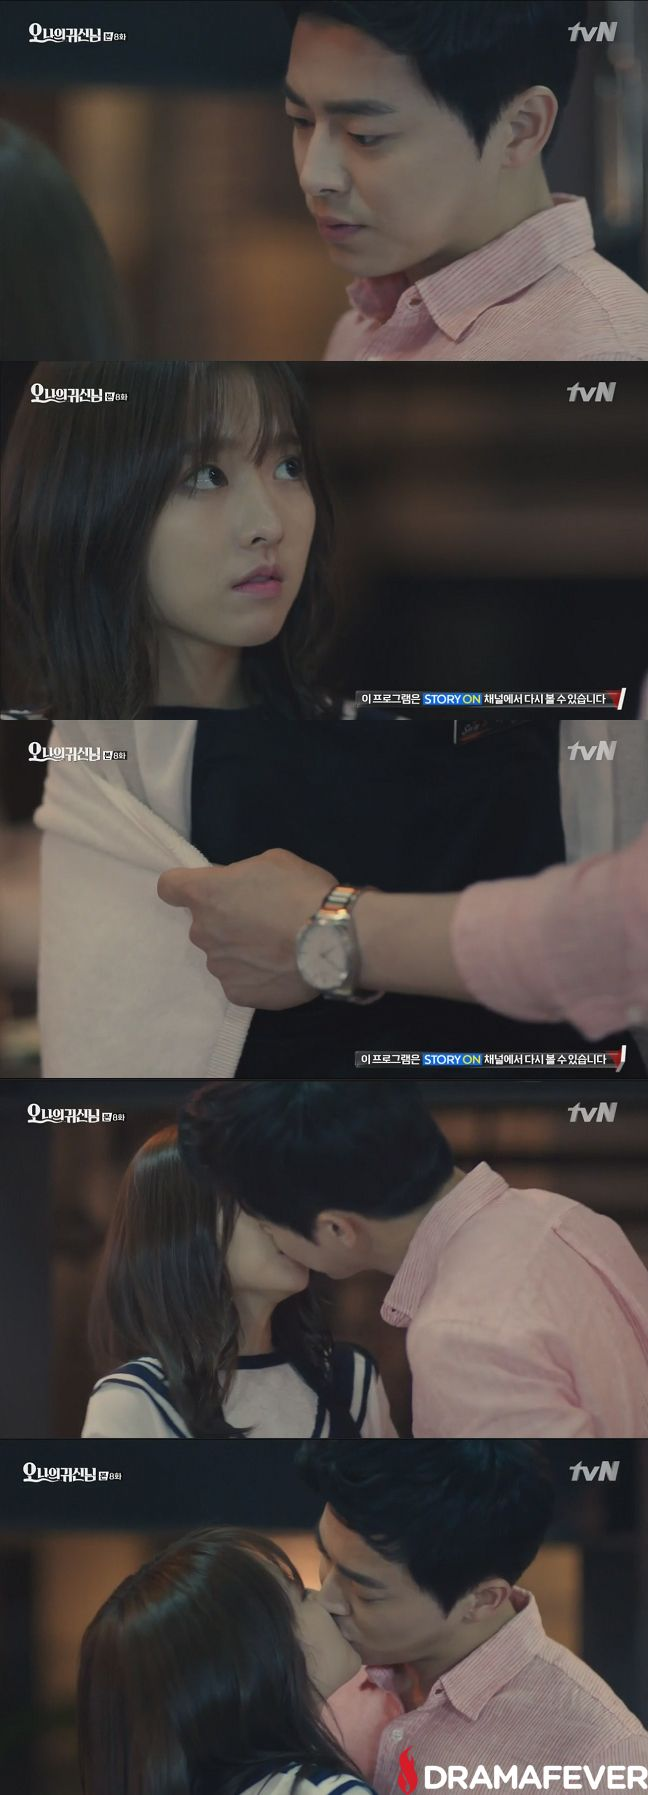 Watch the Oh My Ghostess towel kiss on DramaFever!